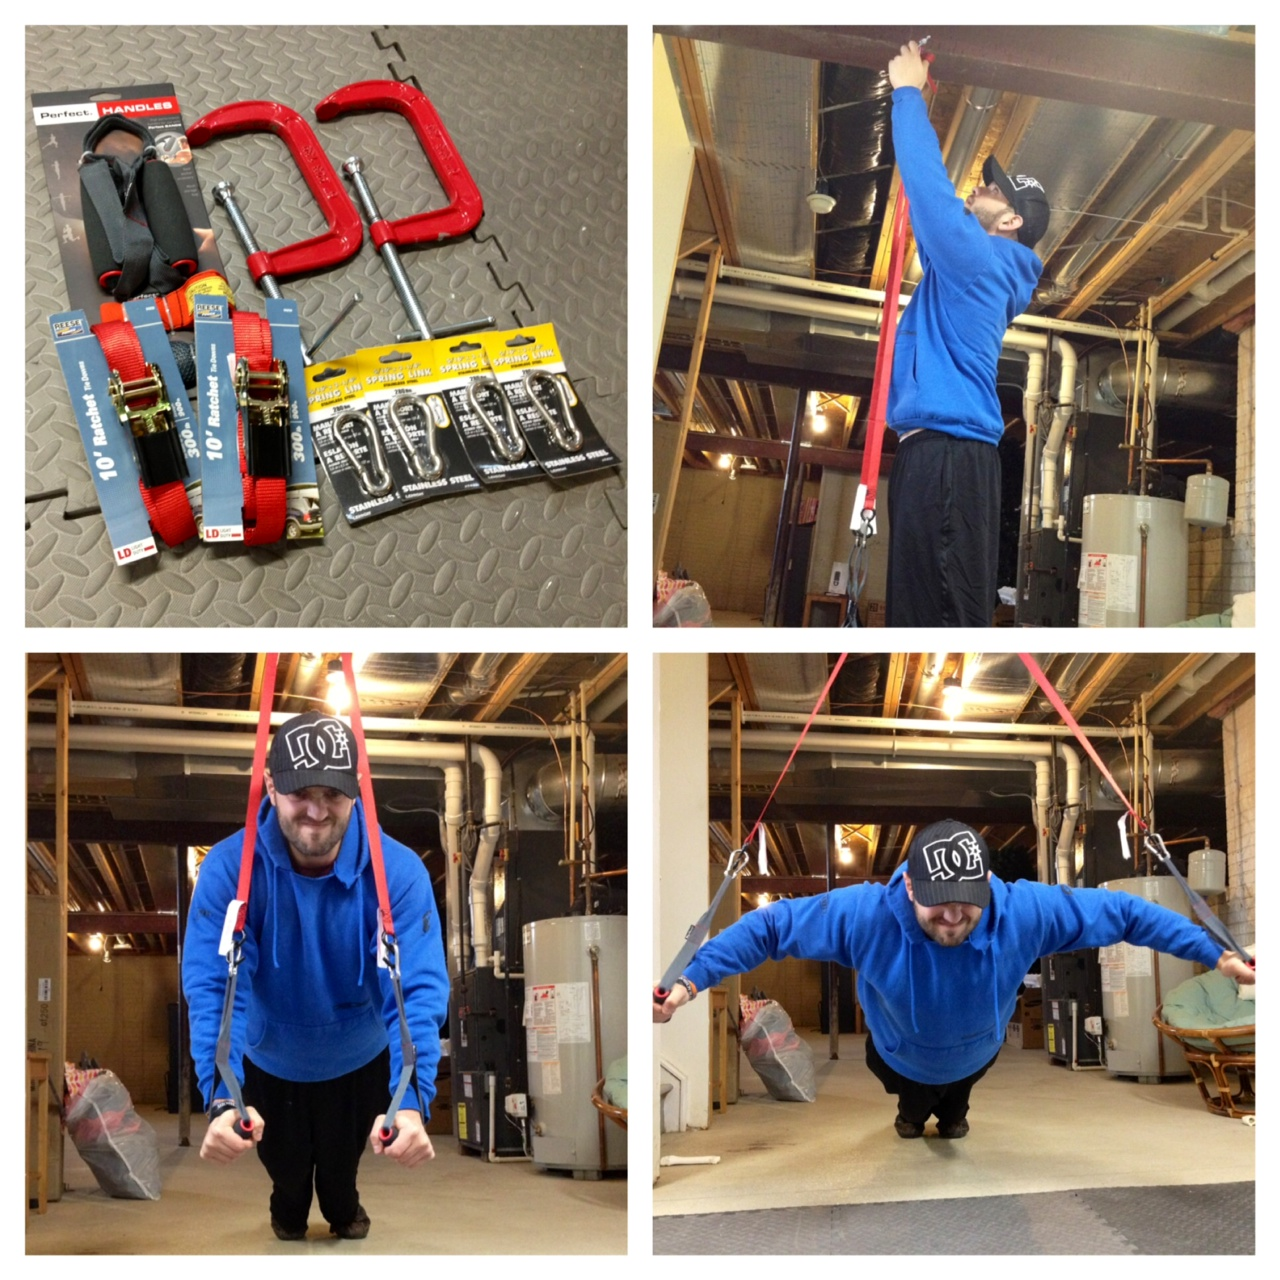 Diy Garage Gym Equipment How To Make Your Own Trx Straps Under 30